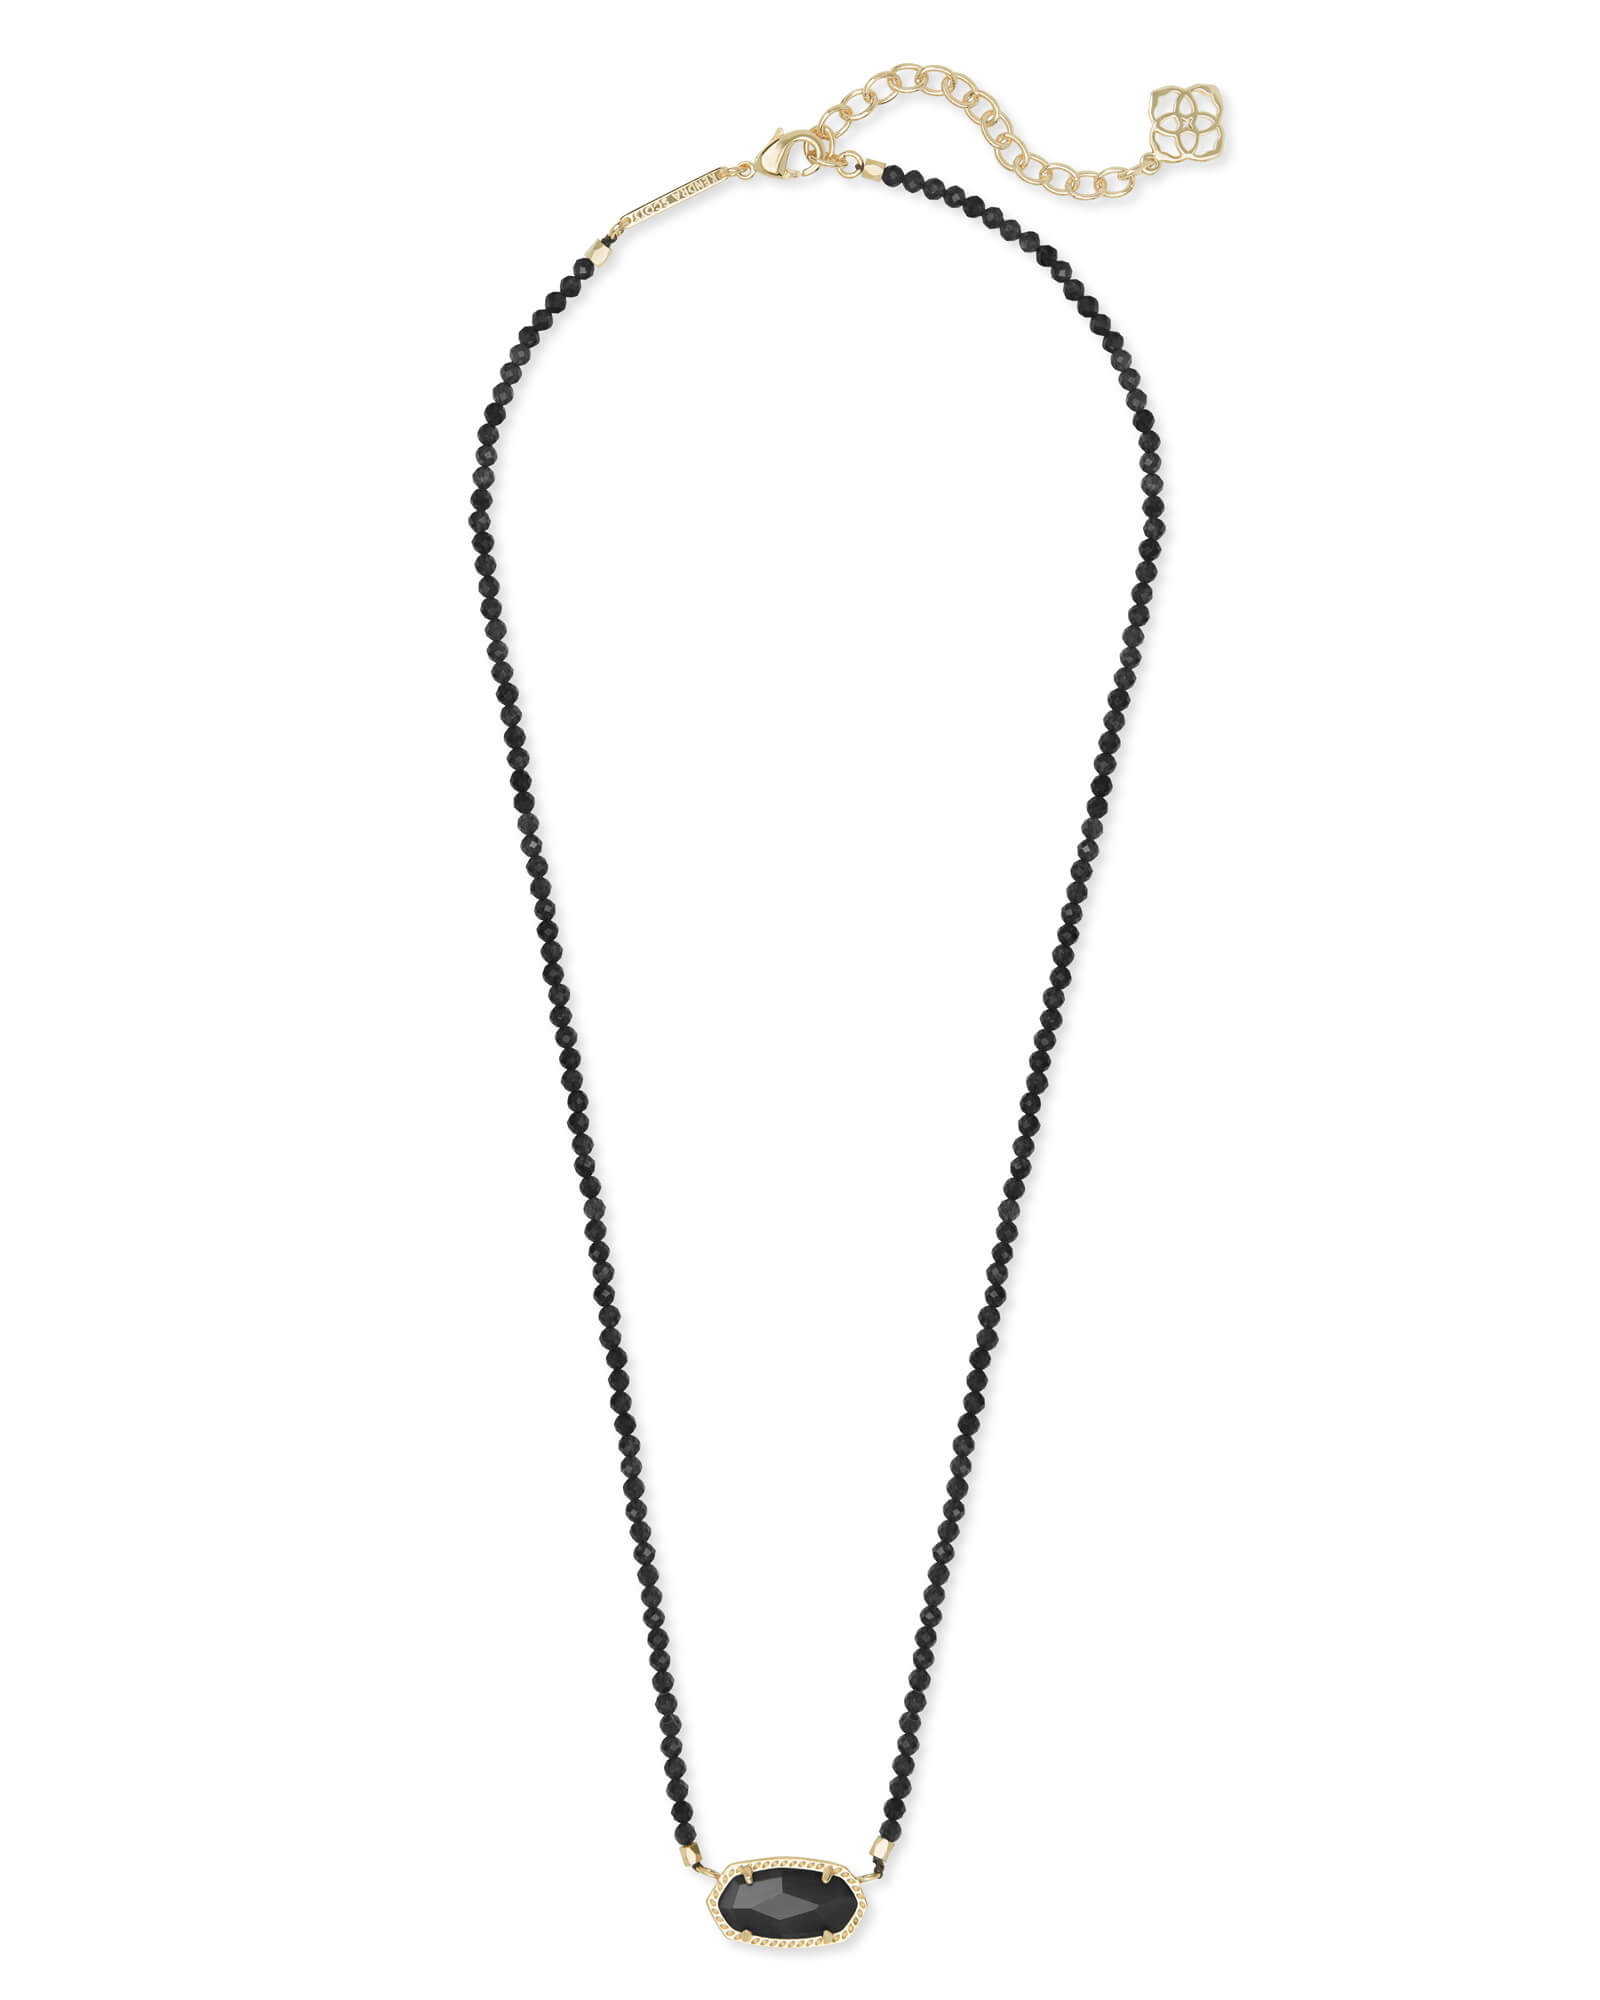 Elisa Gold Beaded Pendant Necklace | Kendra Scott Throughout Latest Beaded Chain Necklaces (Gallery 21 of 25)